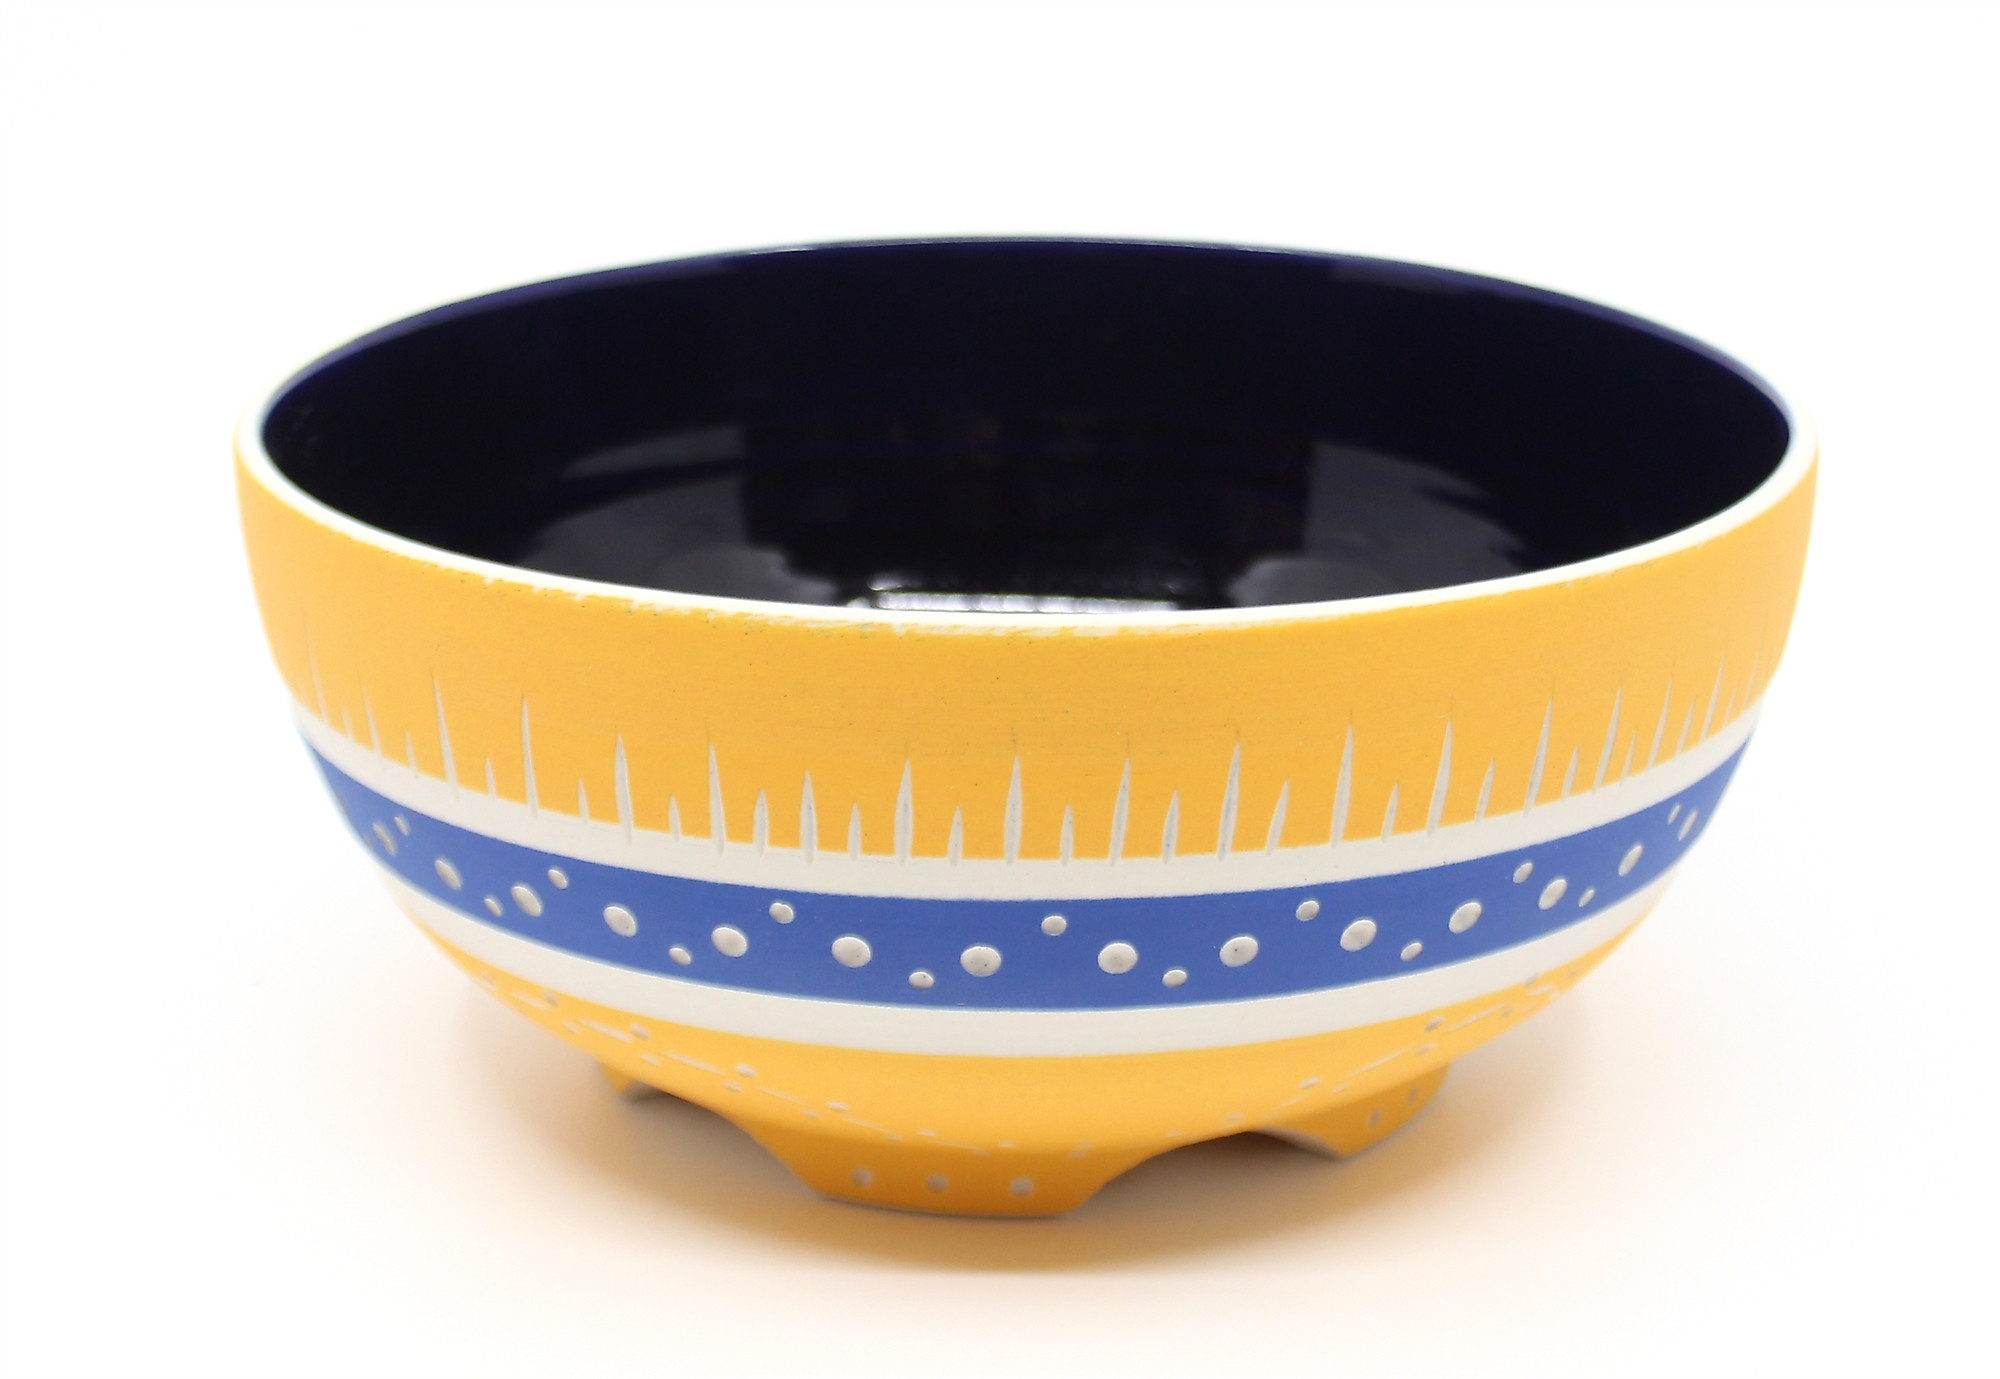 Tangerine & Blue Bowl by Chris Casey